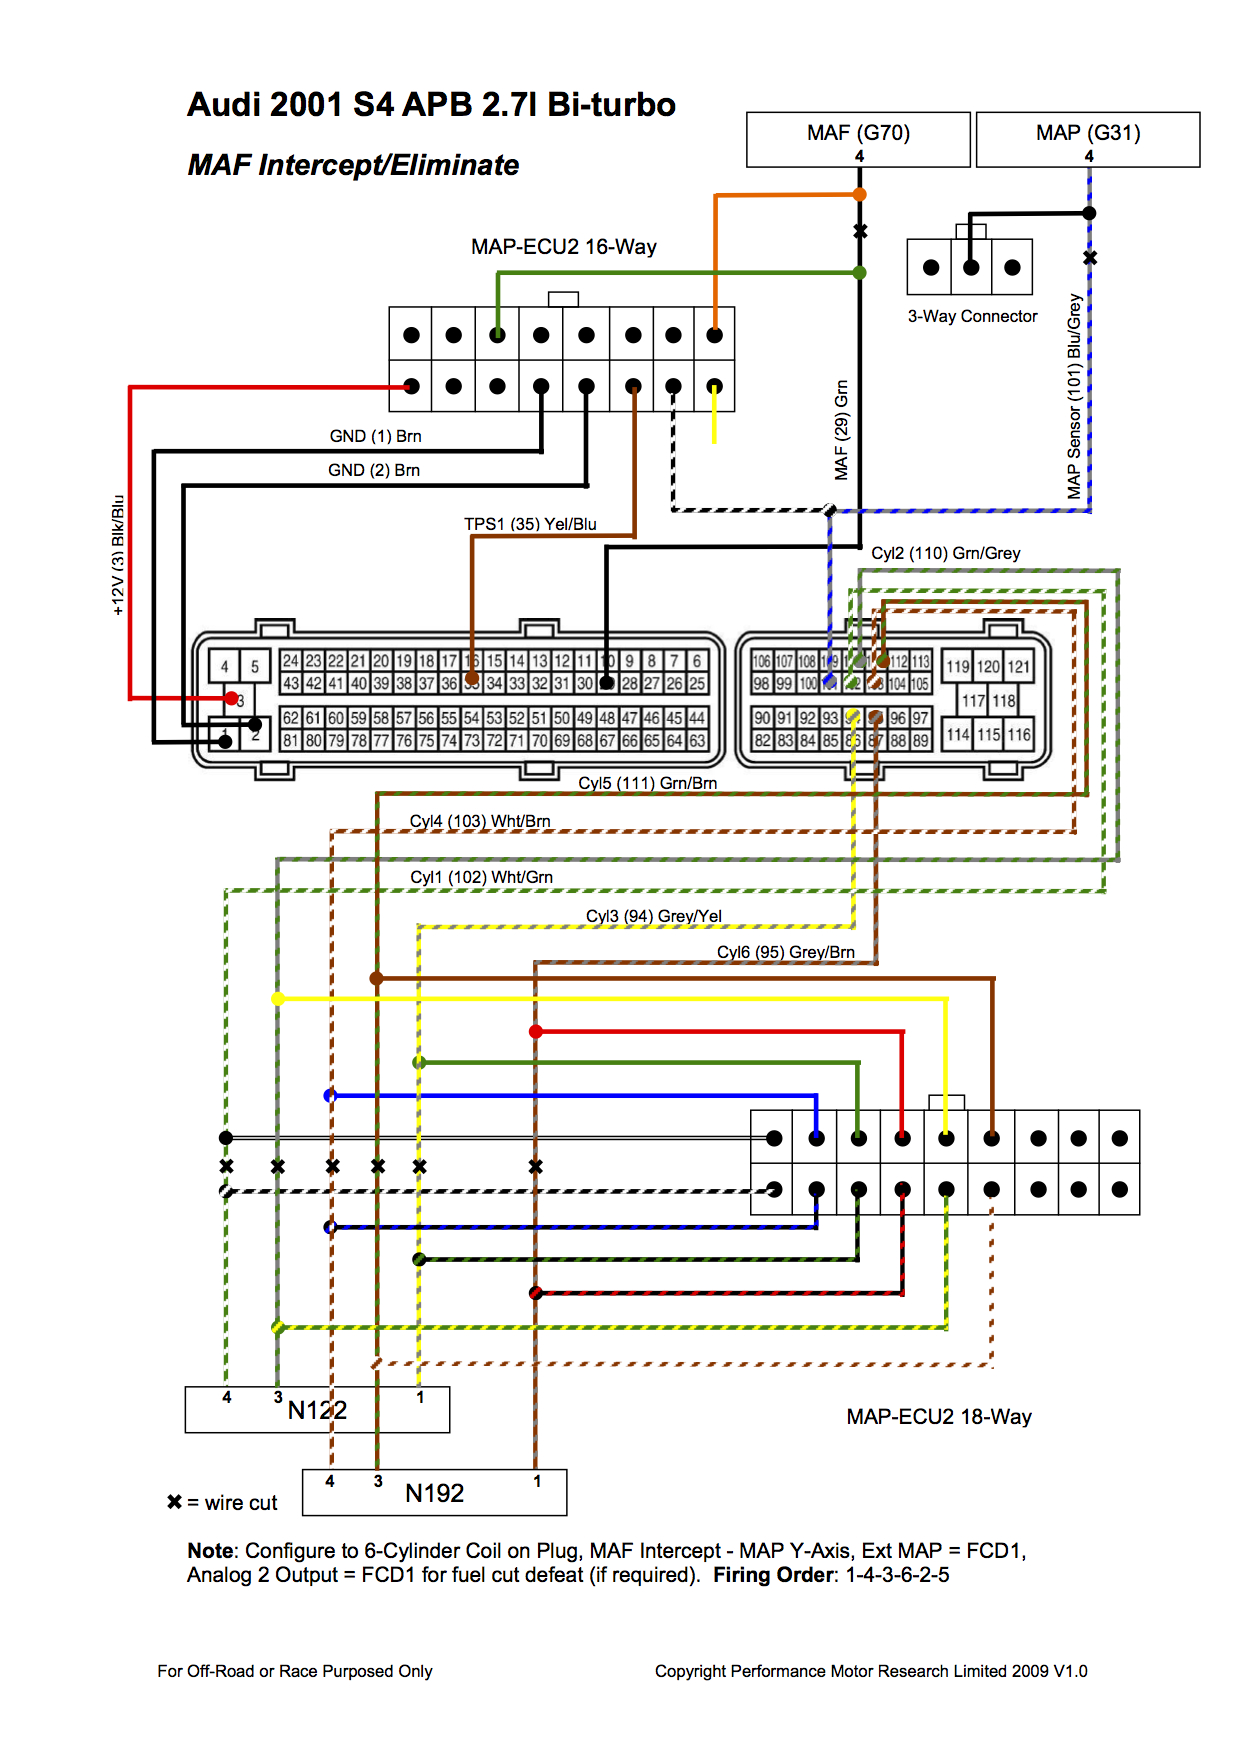 Denso Alternator Wiring Plug Schematic on denso o2 sensor wiring, vw wiring schematic, denso alternator dimensions, denso 3 wire altenator, denso alternator plug, ignition switch wiring schematic, denso 101211 1420 suzuki wiring-diagram, alternator circuit schematic, denso alternator diagram, denso voltage regulator,